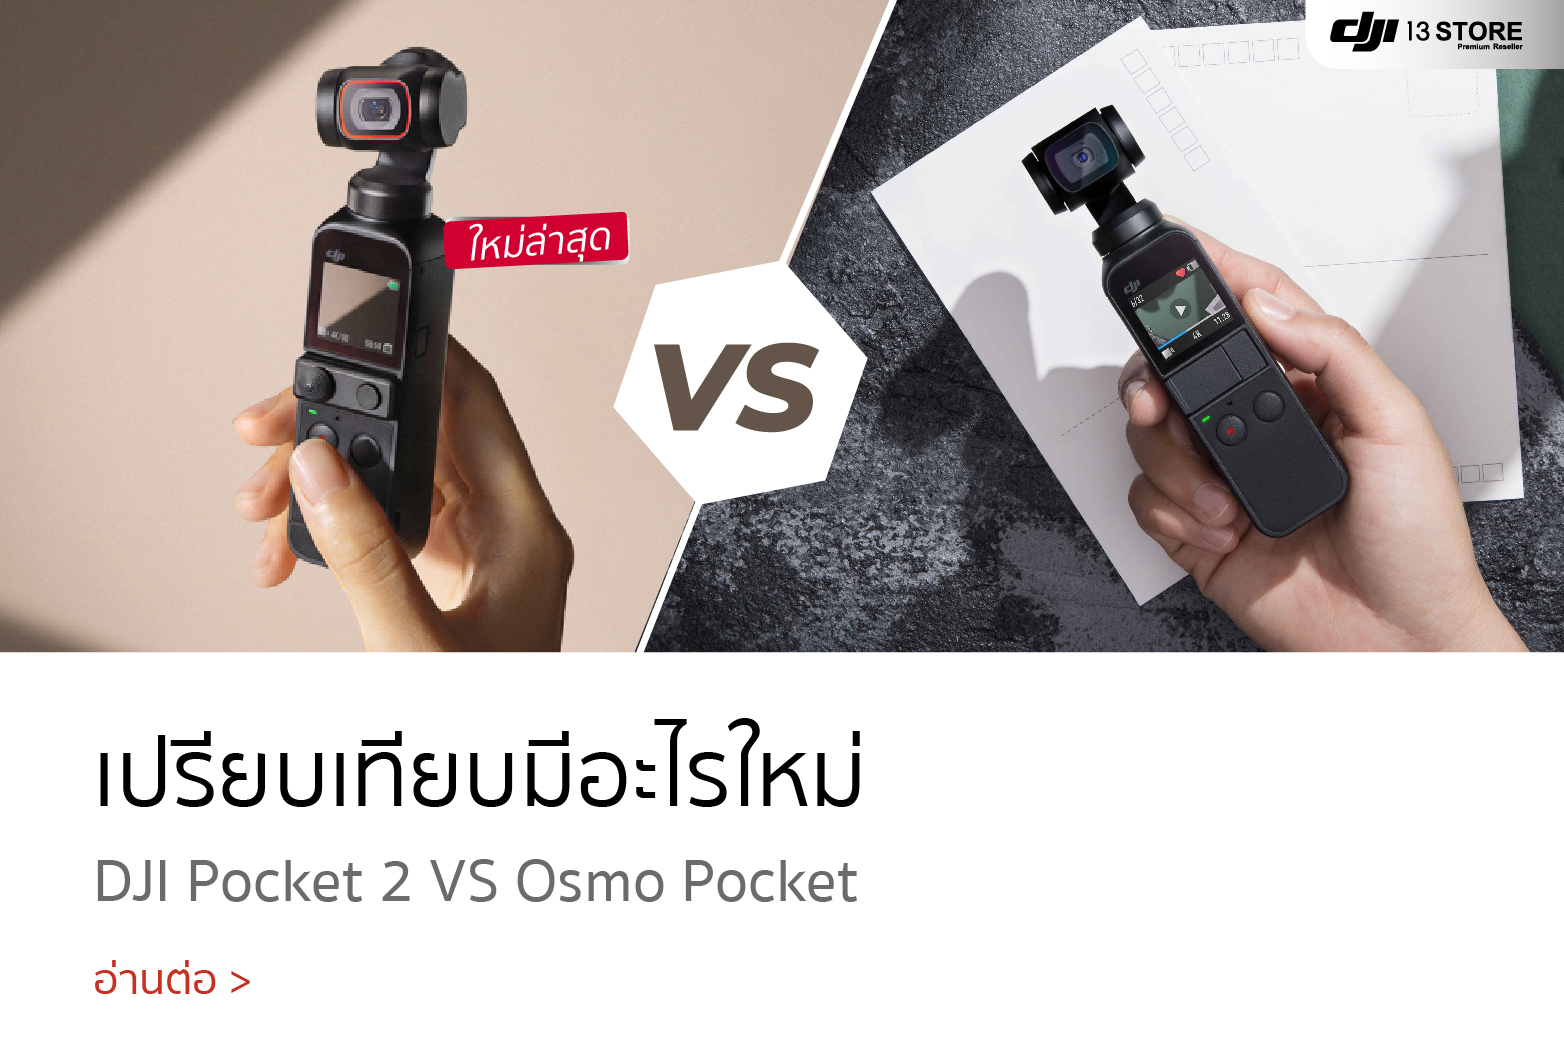 dji-pocket-2-osmo-pocket-comparison